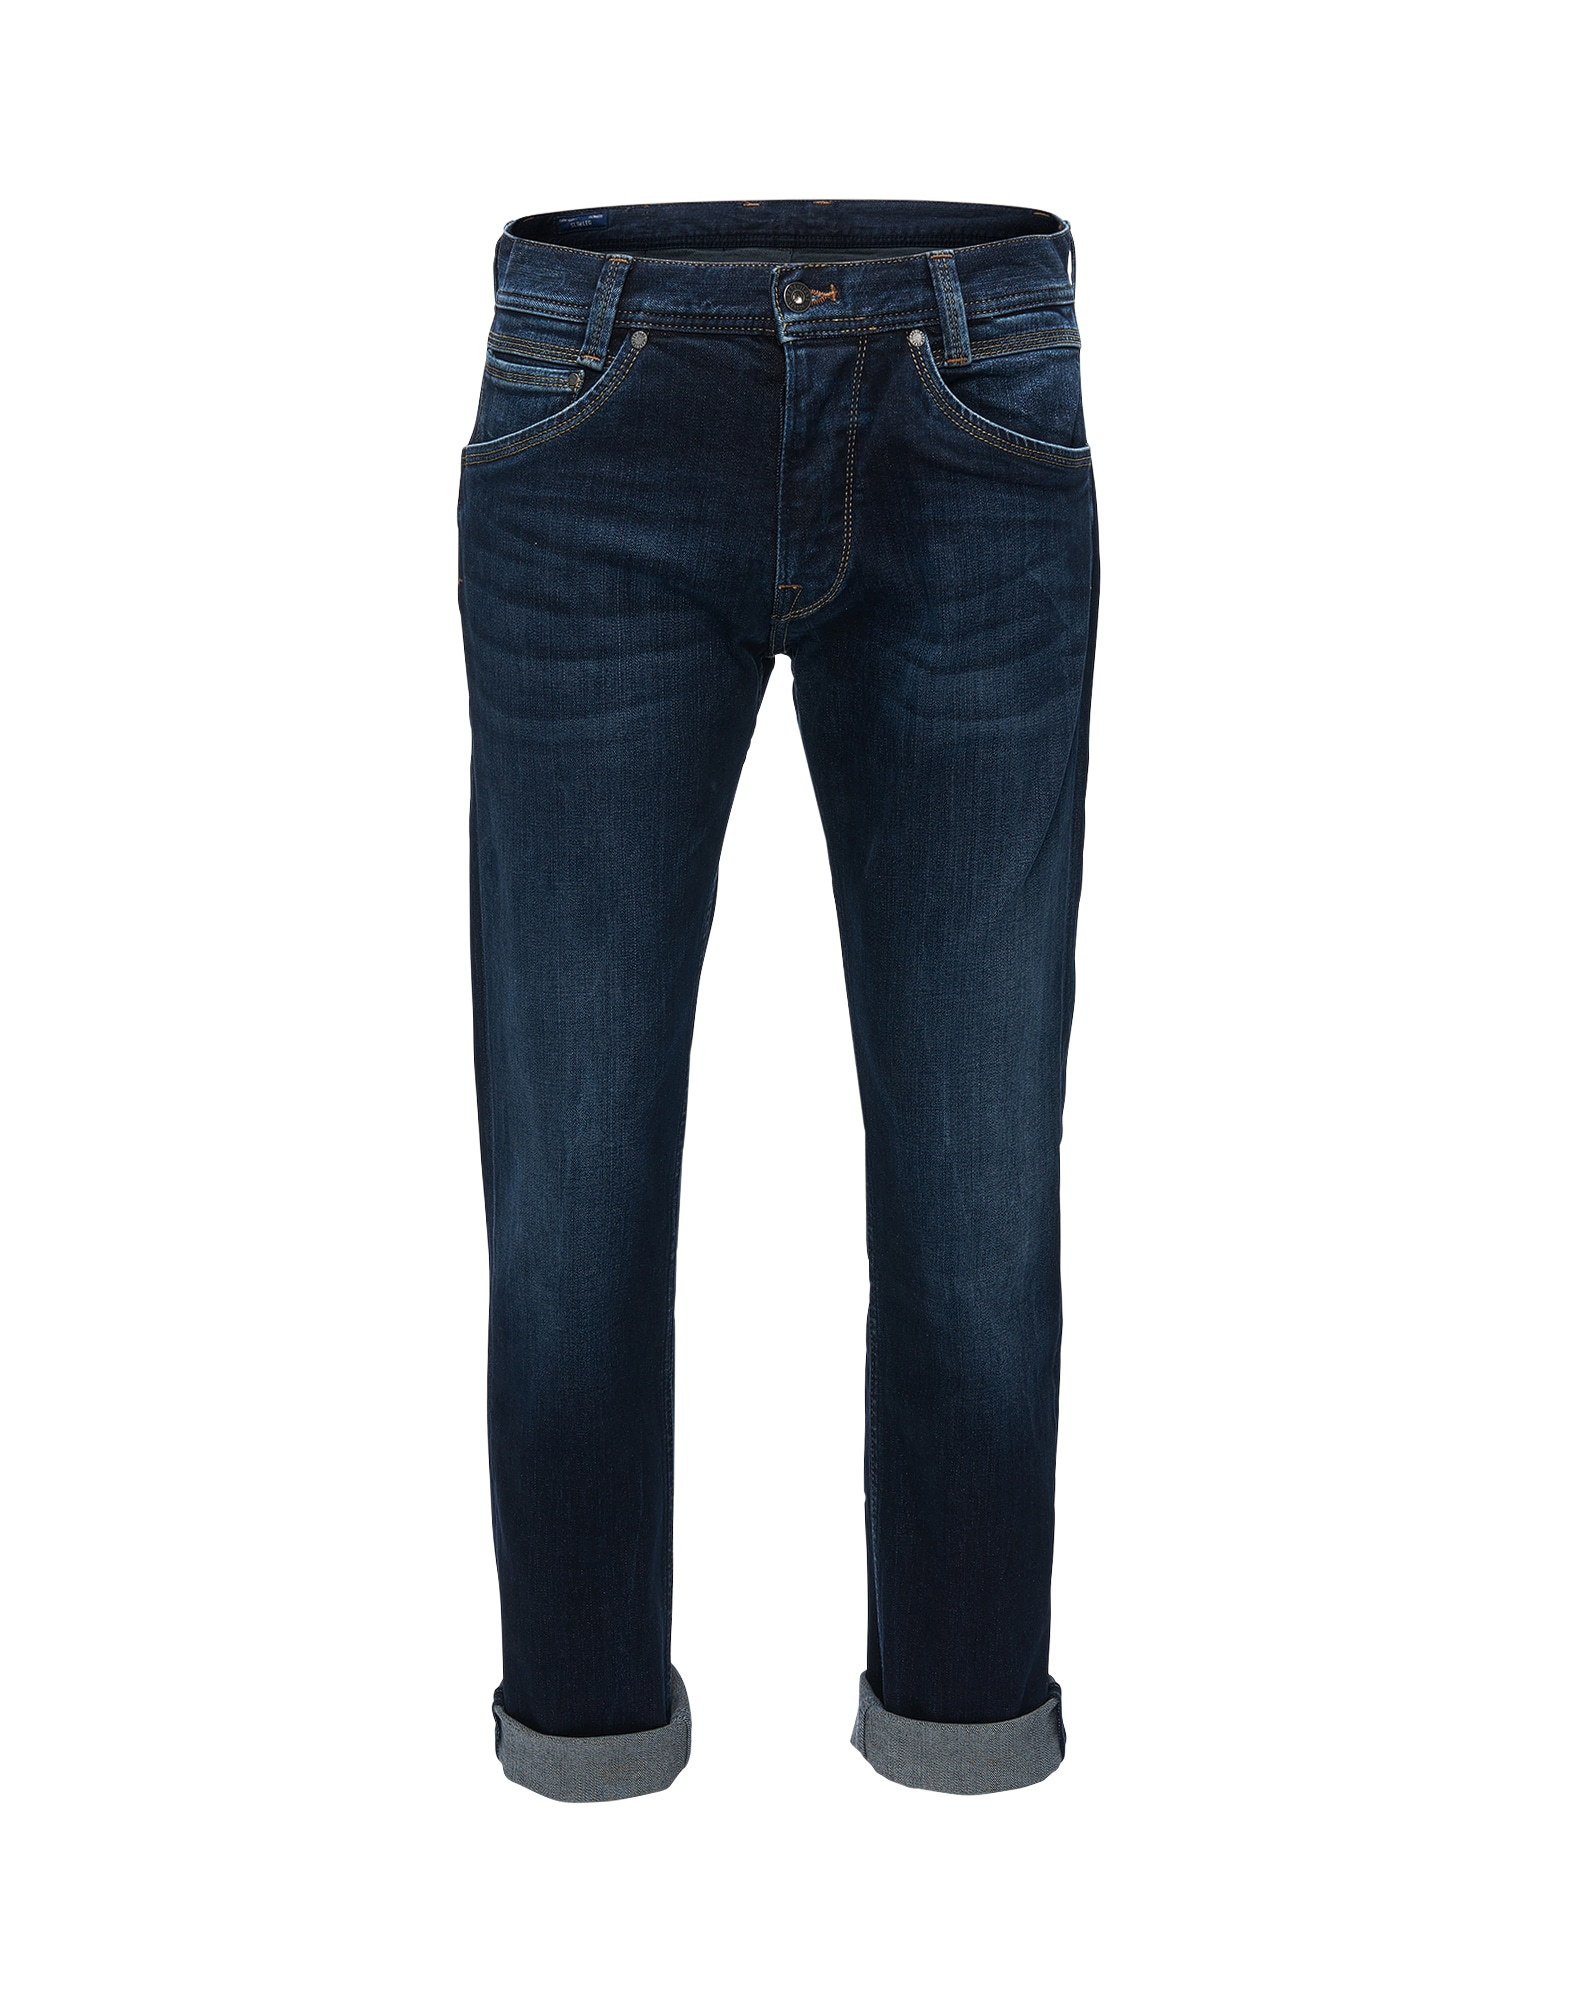 Pepe Jeans Heren Jeans Spike donkerblauw